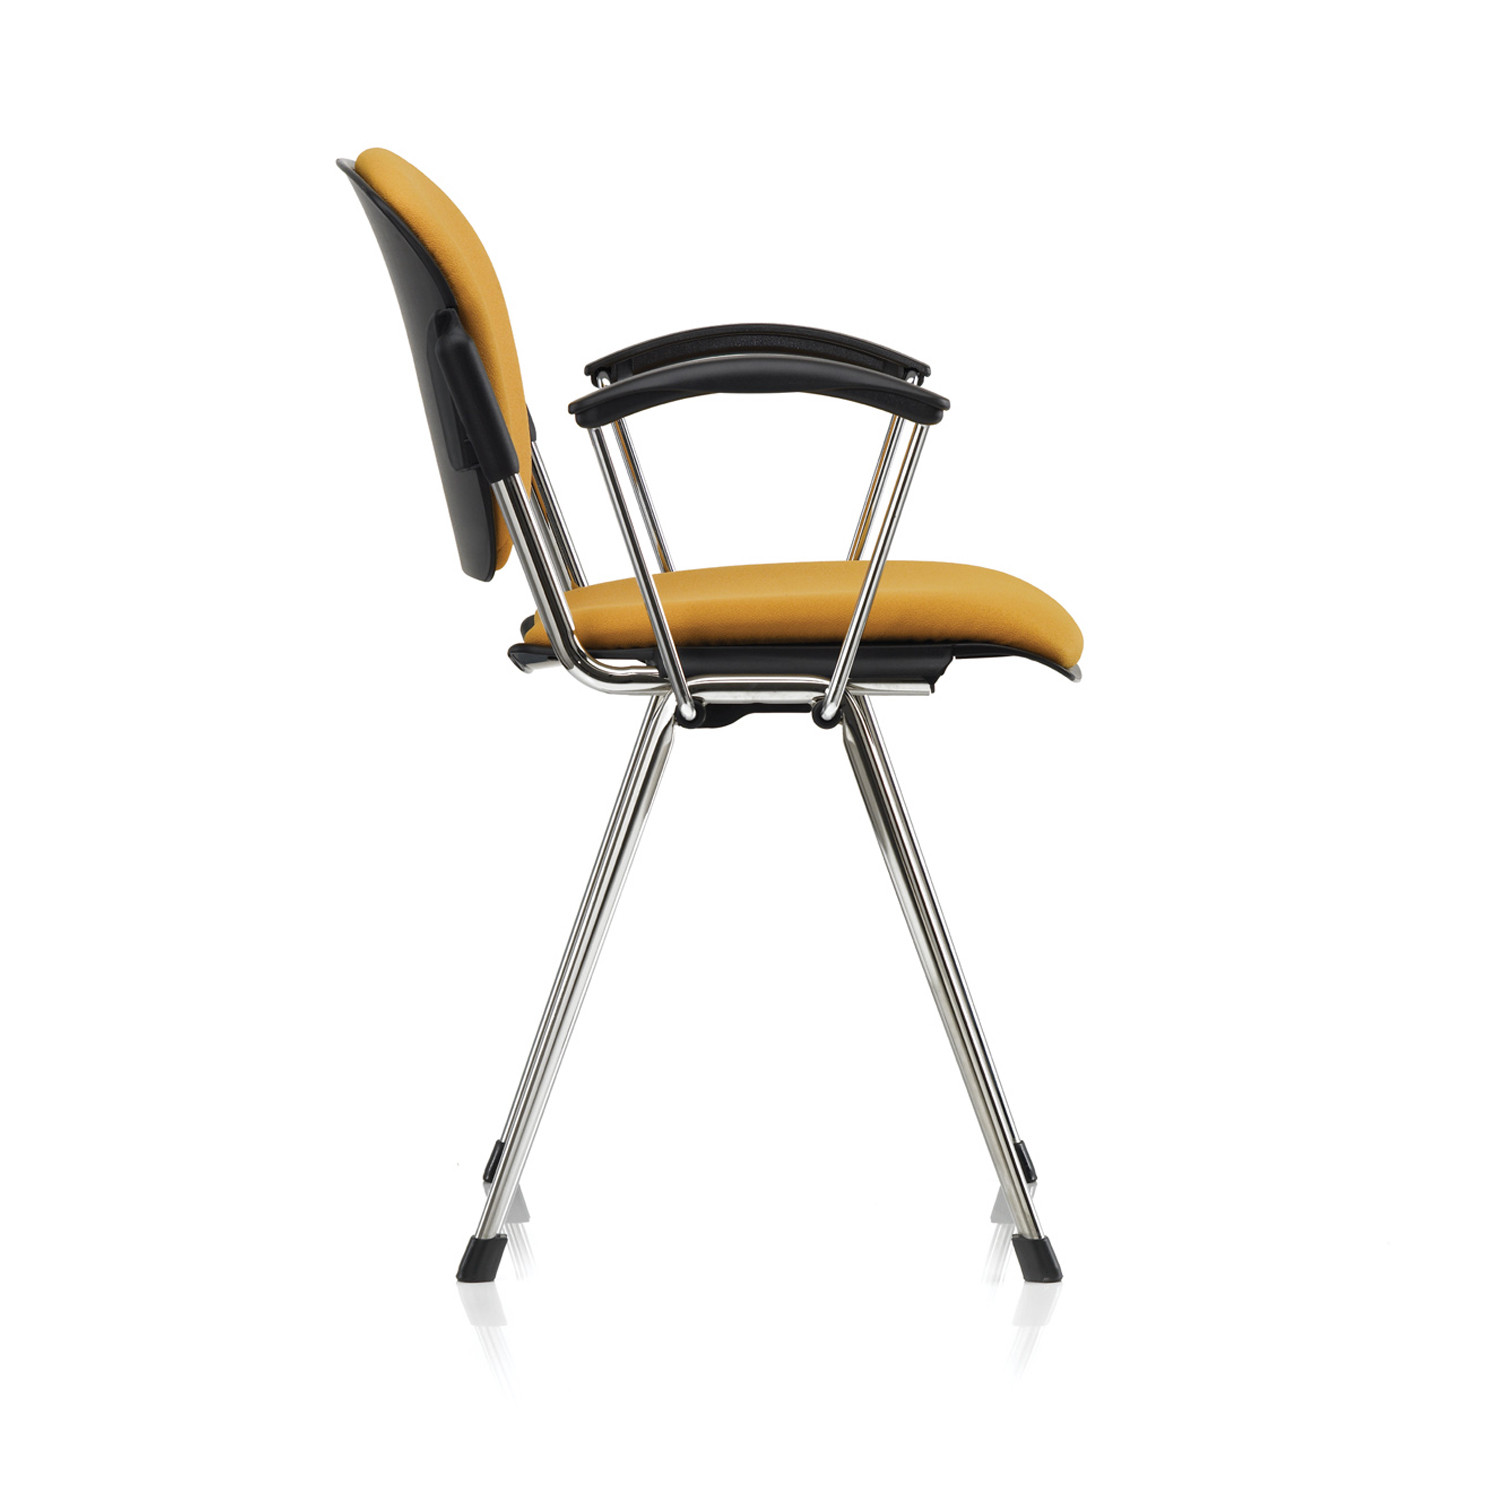 Series 8000 Chairs